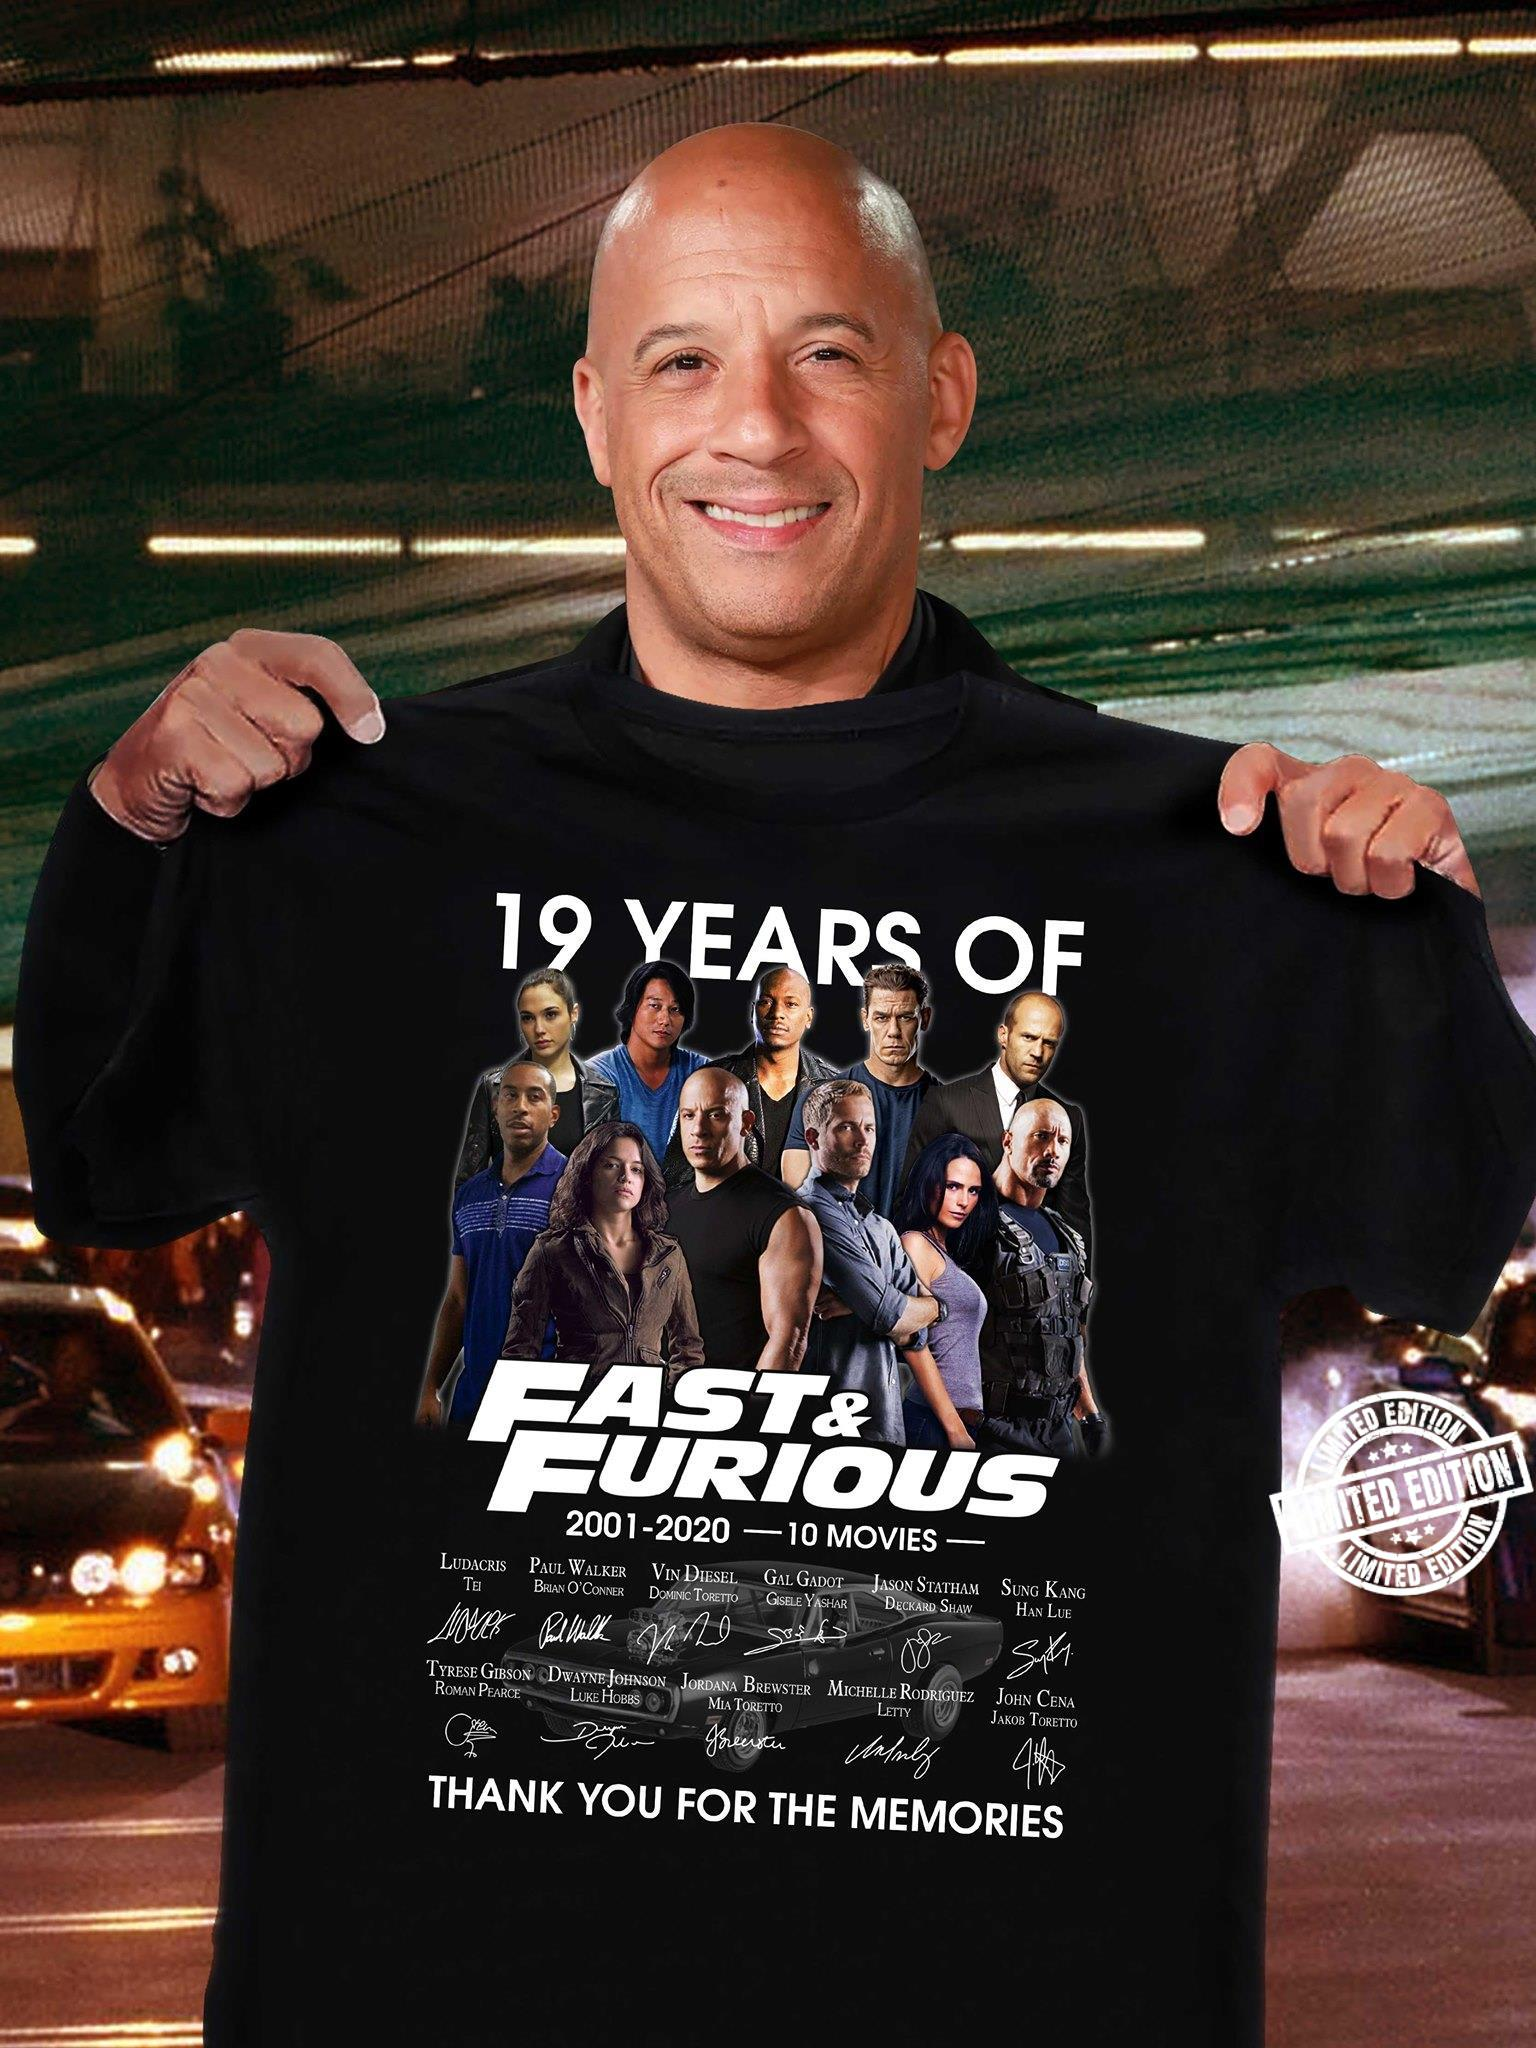 19 years of fast and furious thank you for the memories shirt